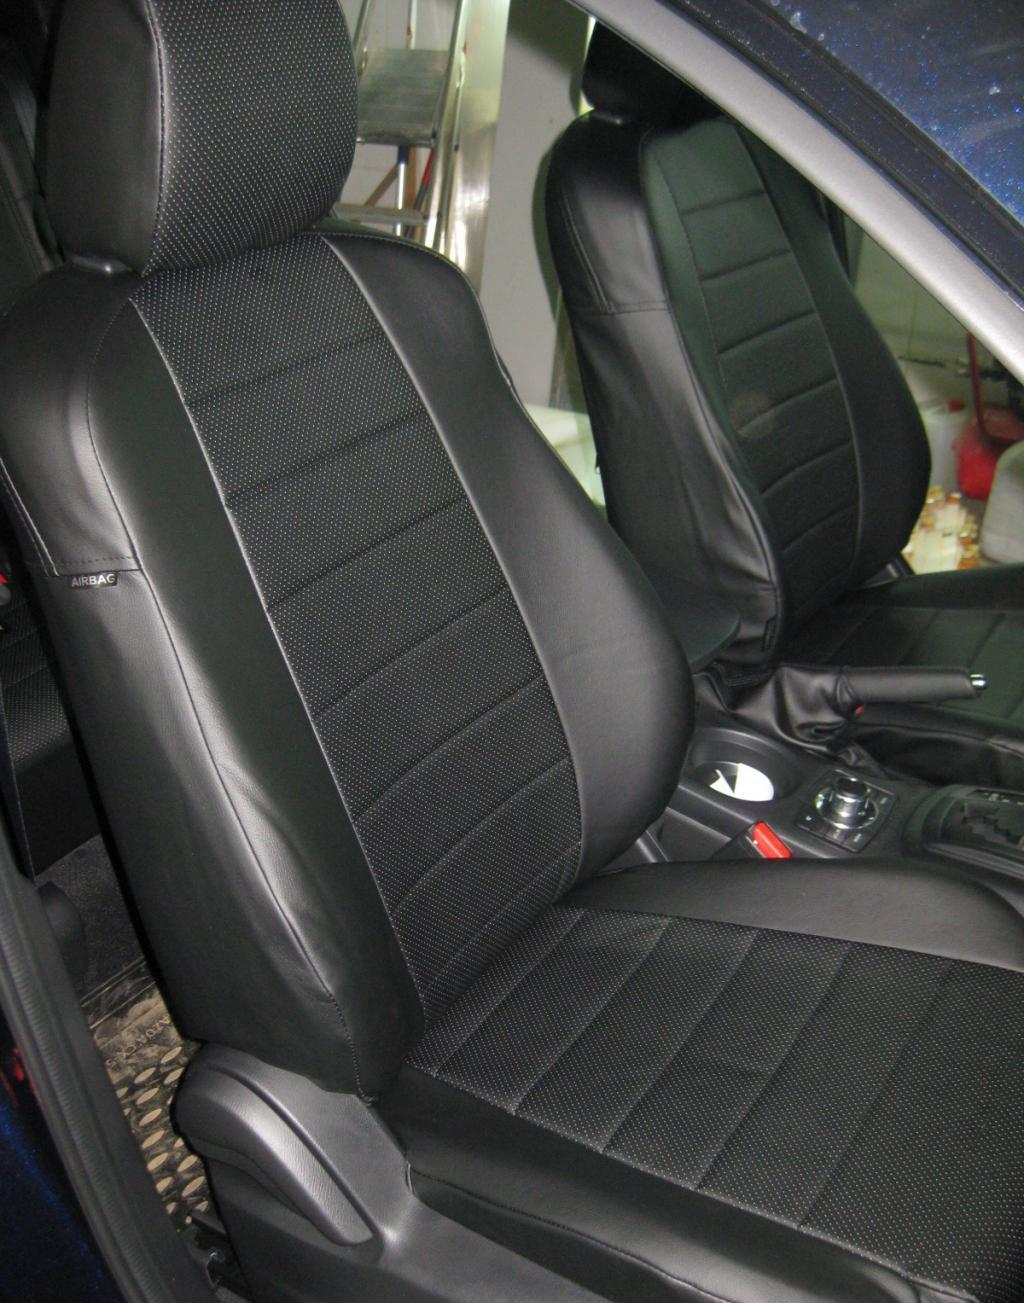 Chevrolet cruze seat covers perforated leatherette eco leather